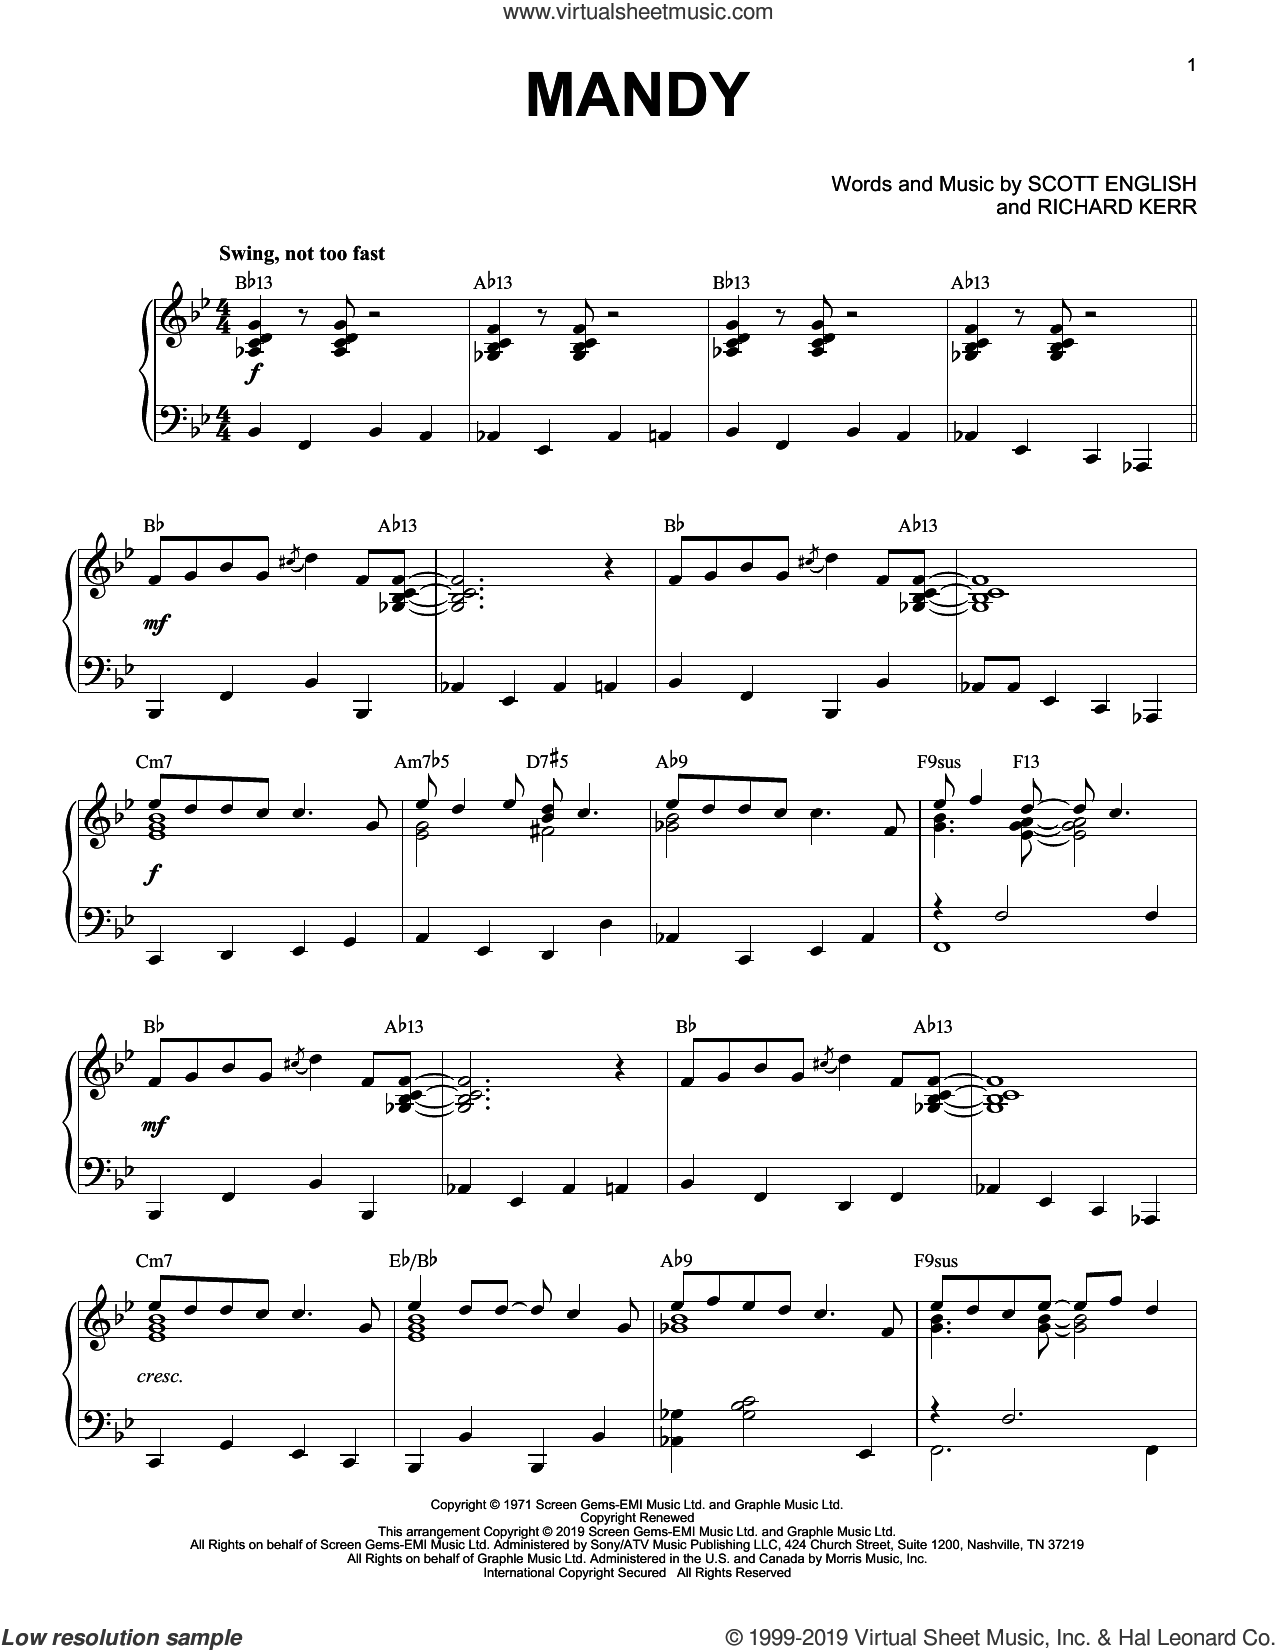 Mandy [Jazz version] sheet music for piano solo by Barry Manilow, Richard Kerr and Scott English, intermediate skill level